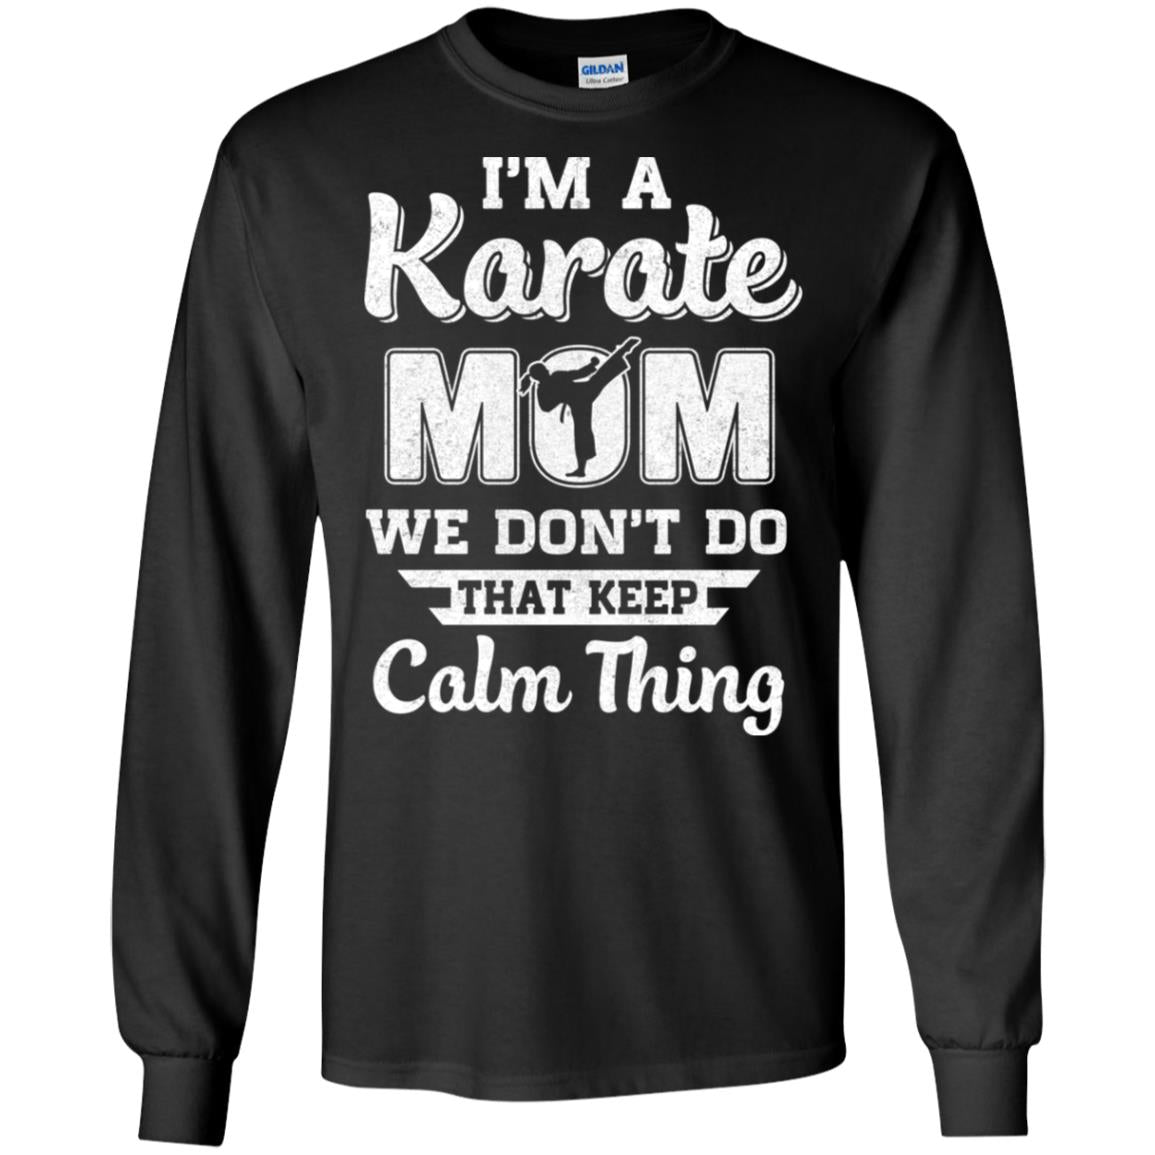 Funny Karate Mom Fighting Kyokushin Gifts